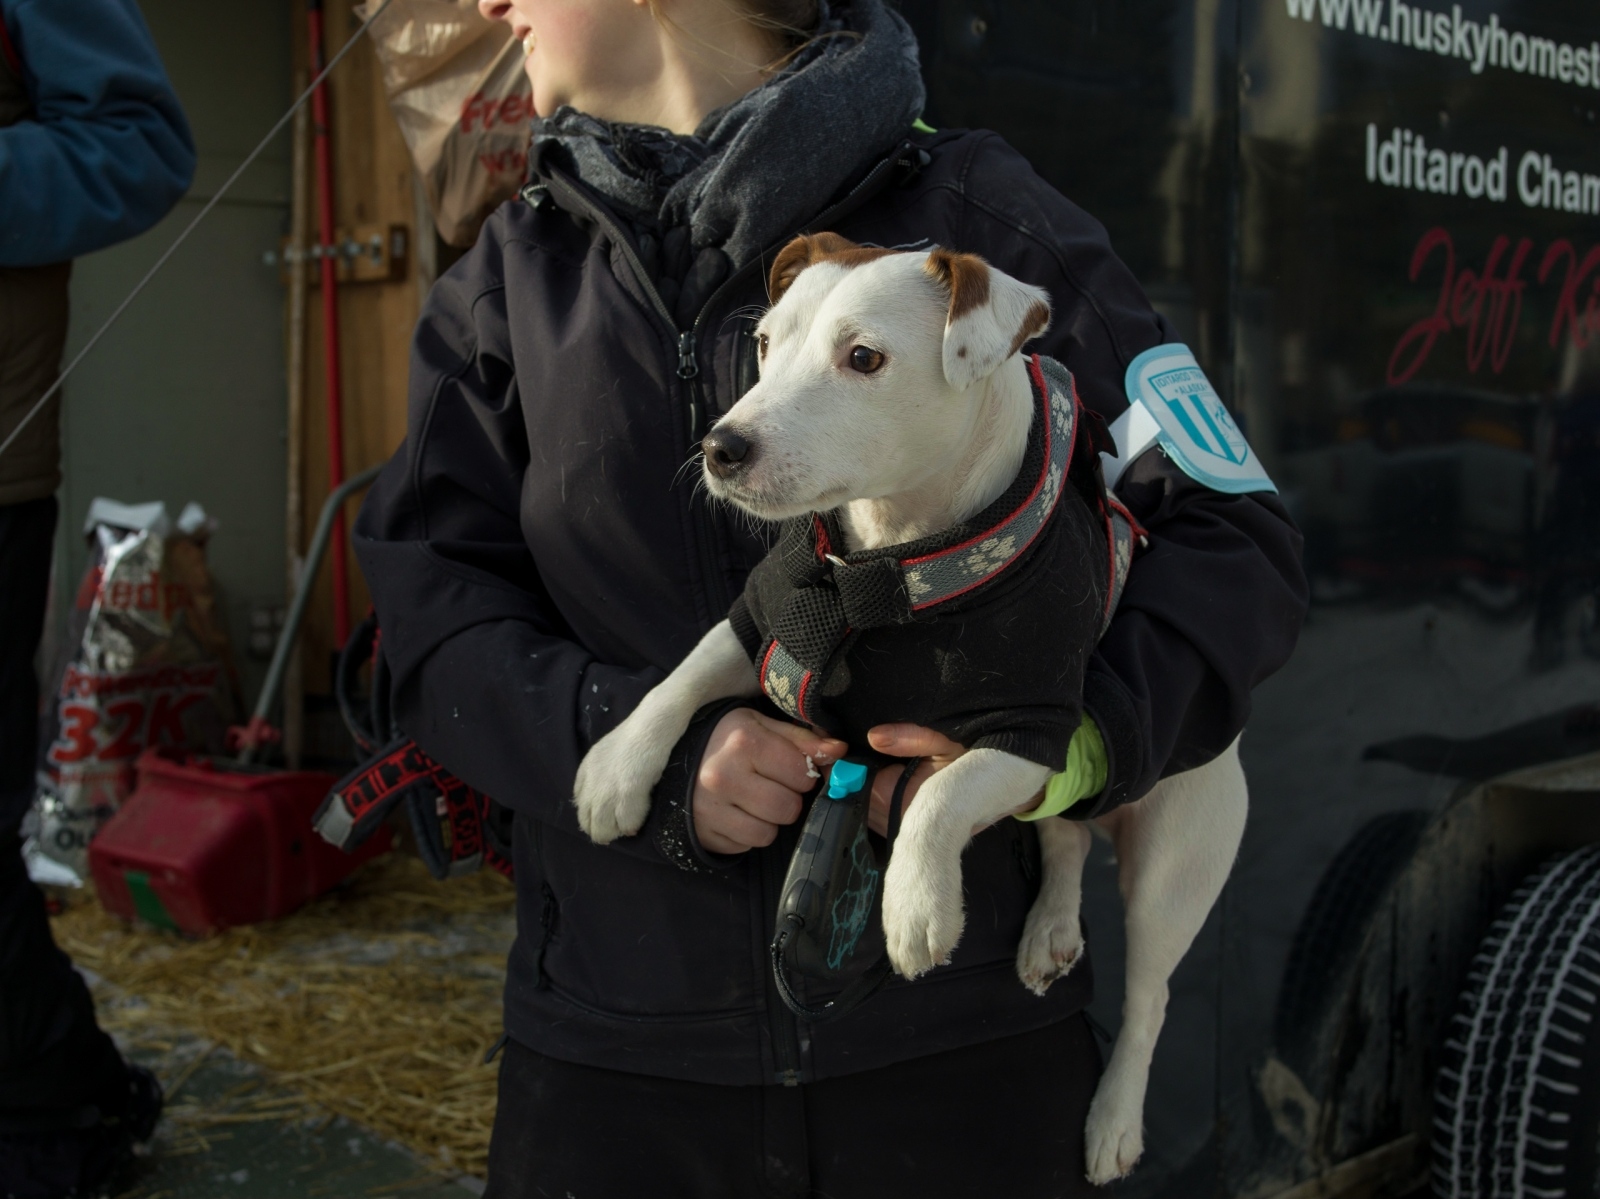 Ellen King laughs with her father, 4-time Iditarod champion Jeff King, while holding one of Jeff King's puppies at the ceremonial Iditarod start in Anchorage on March 5, 2016.